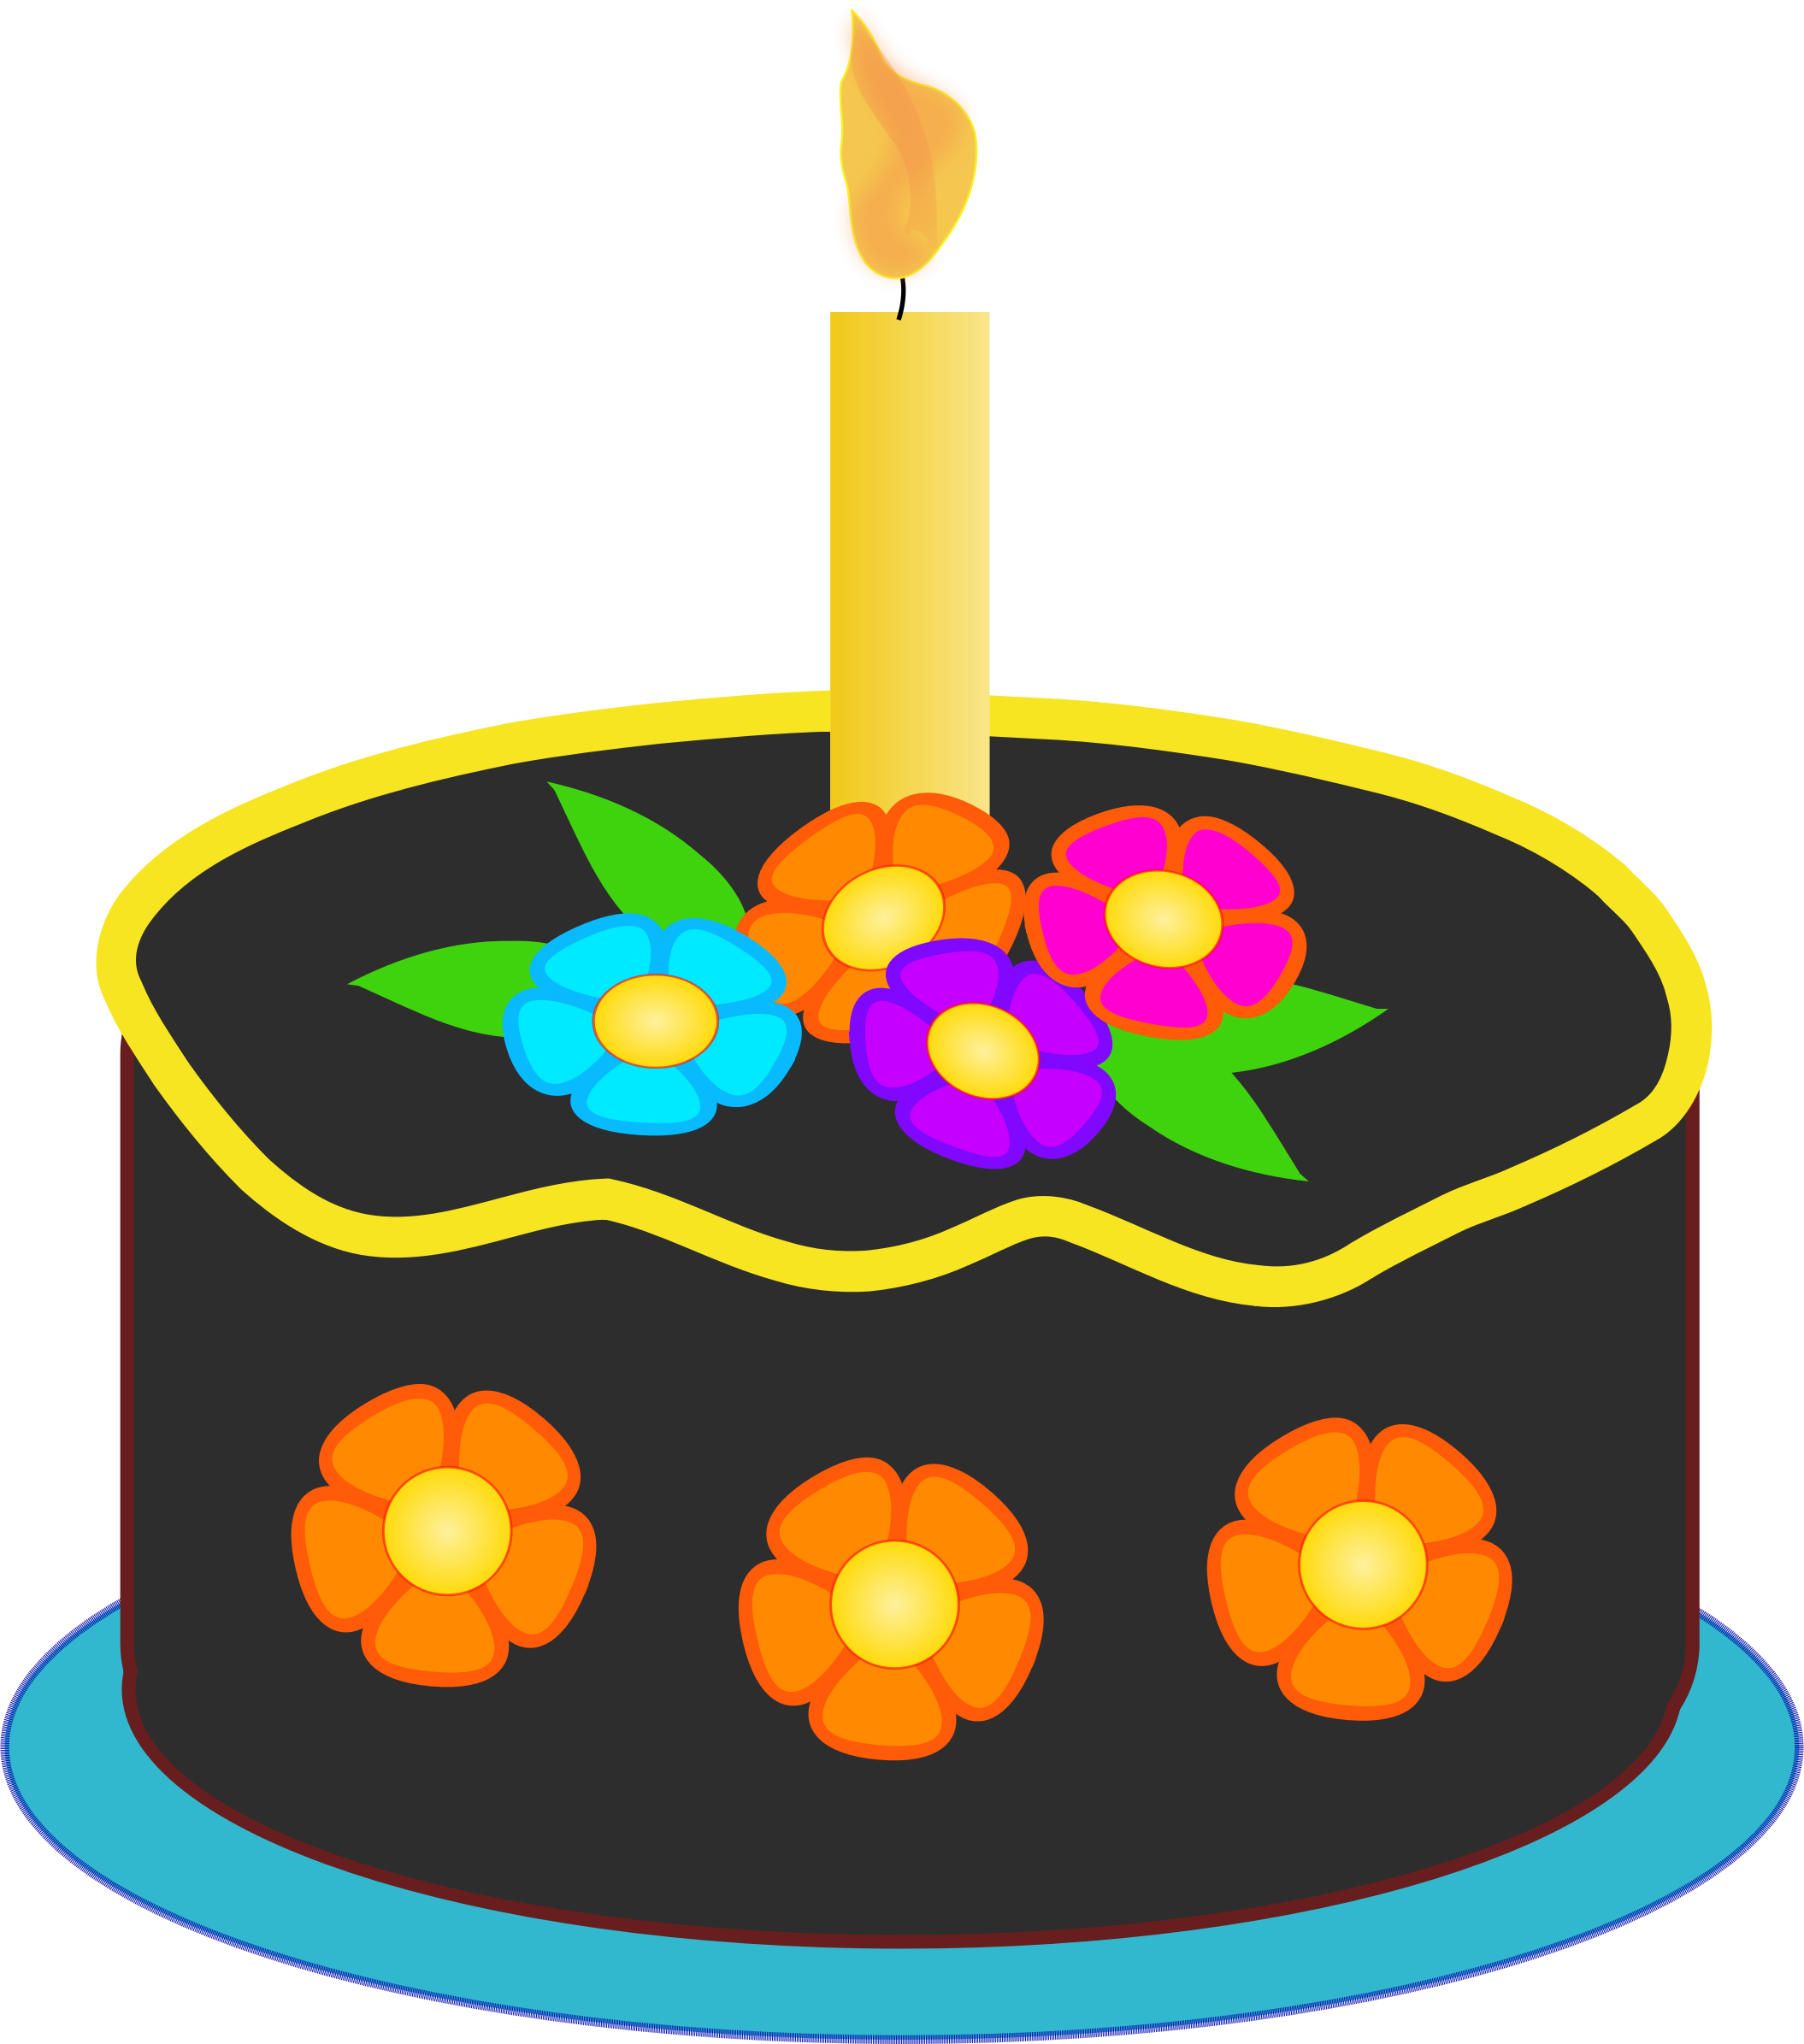 2110x2391 Image For Free Birthday Cake With Colorful Flowers High Resolution